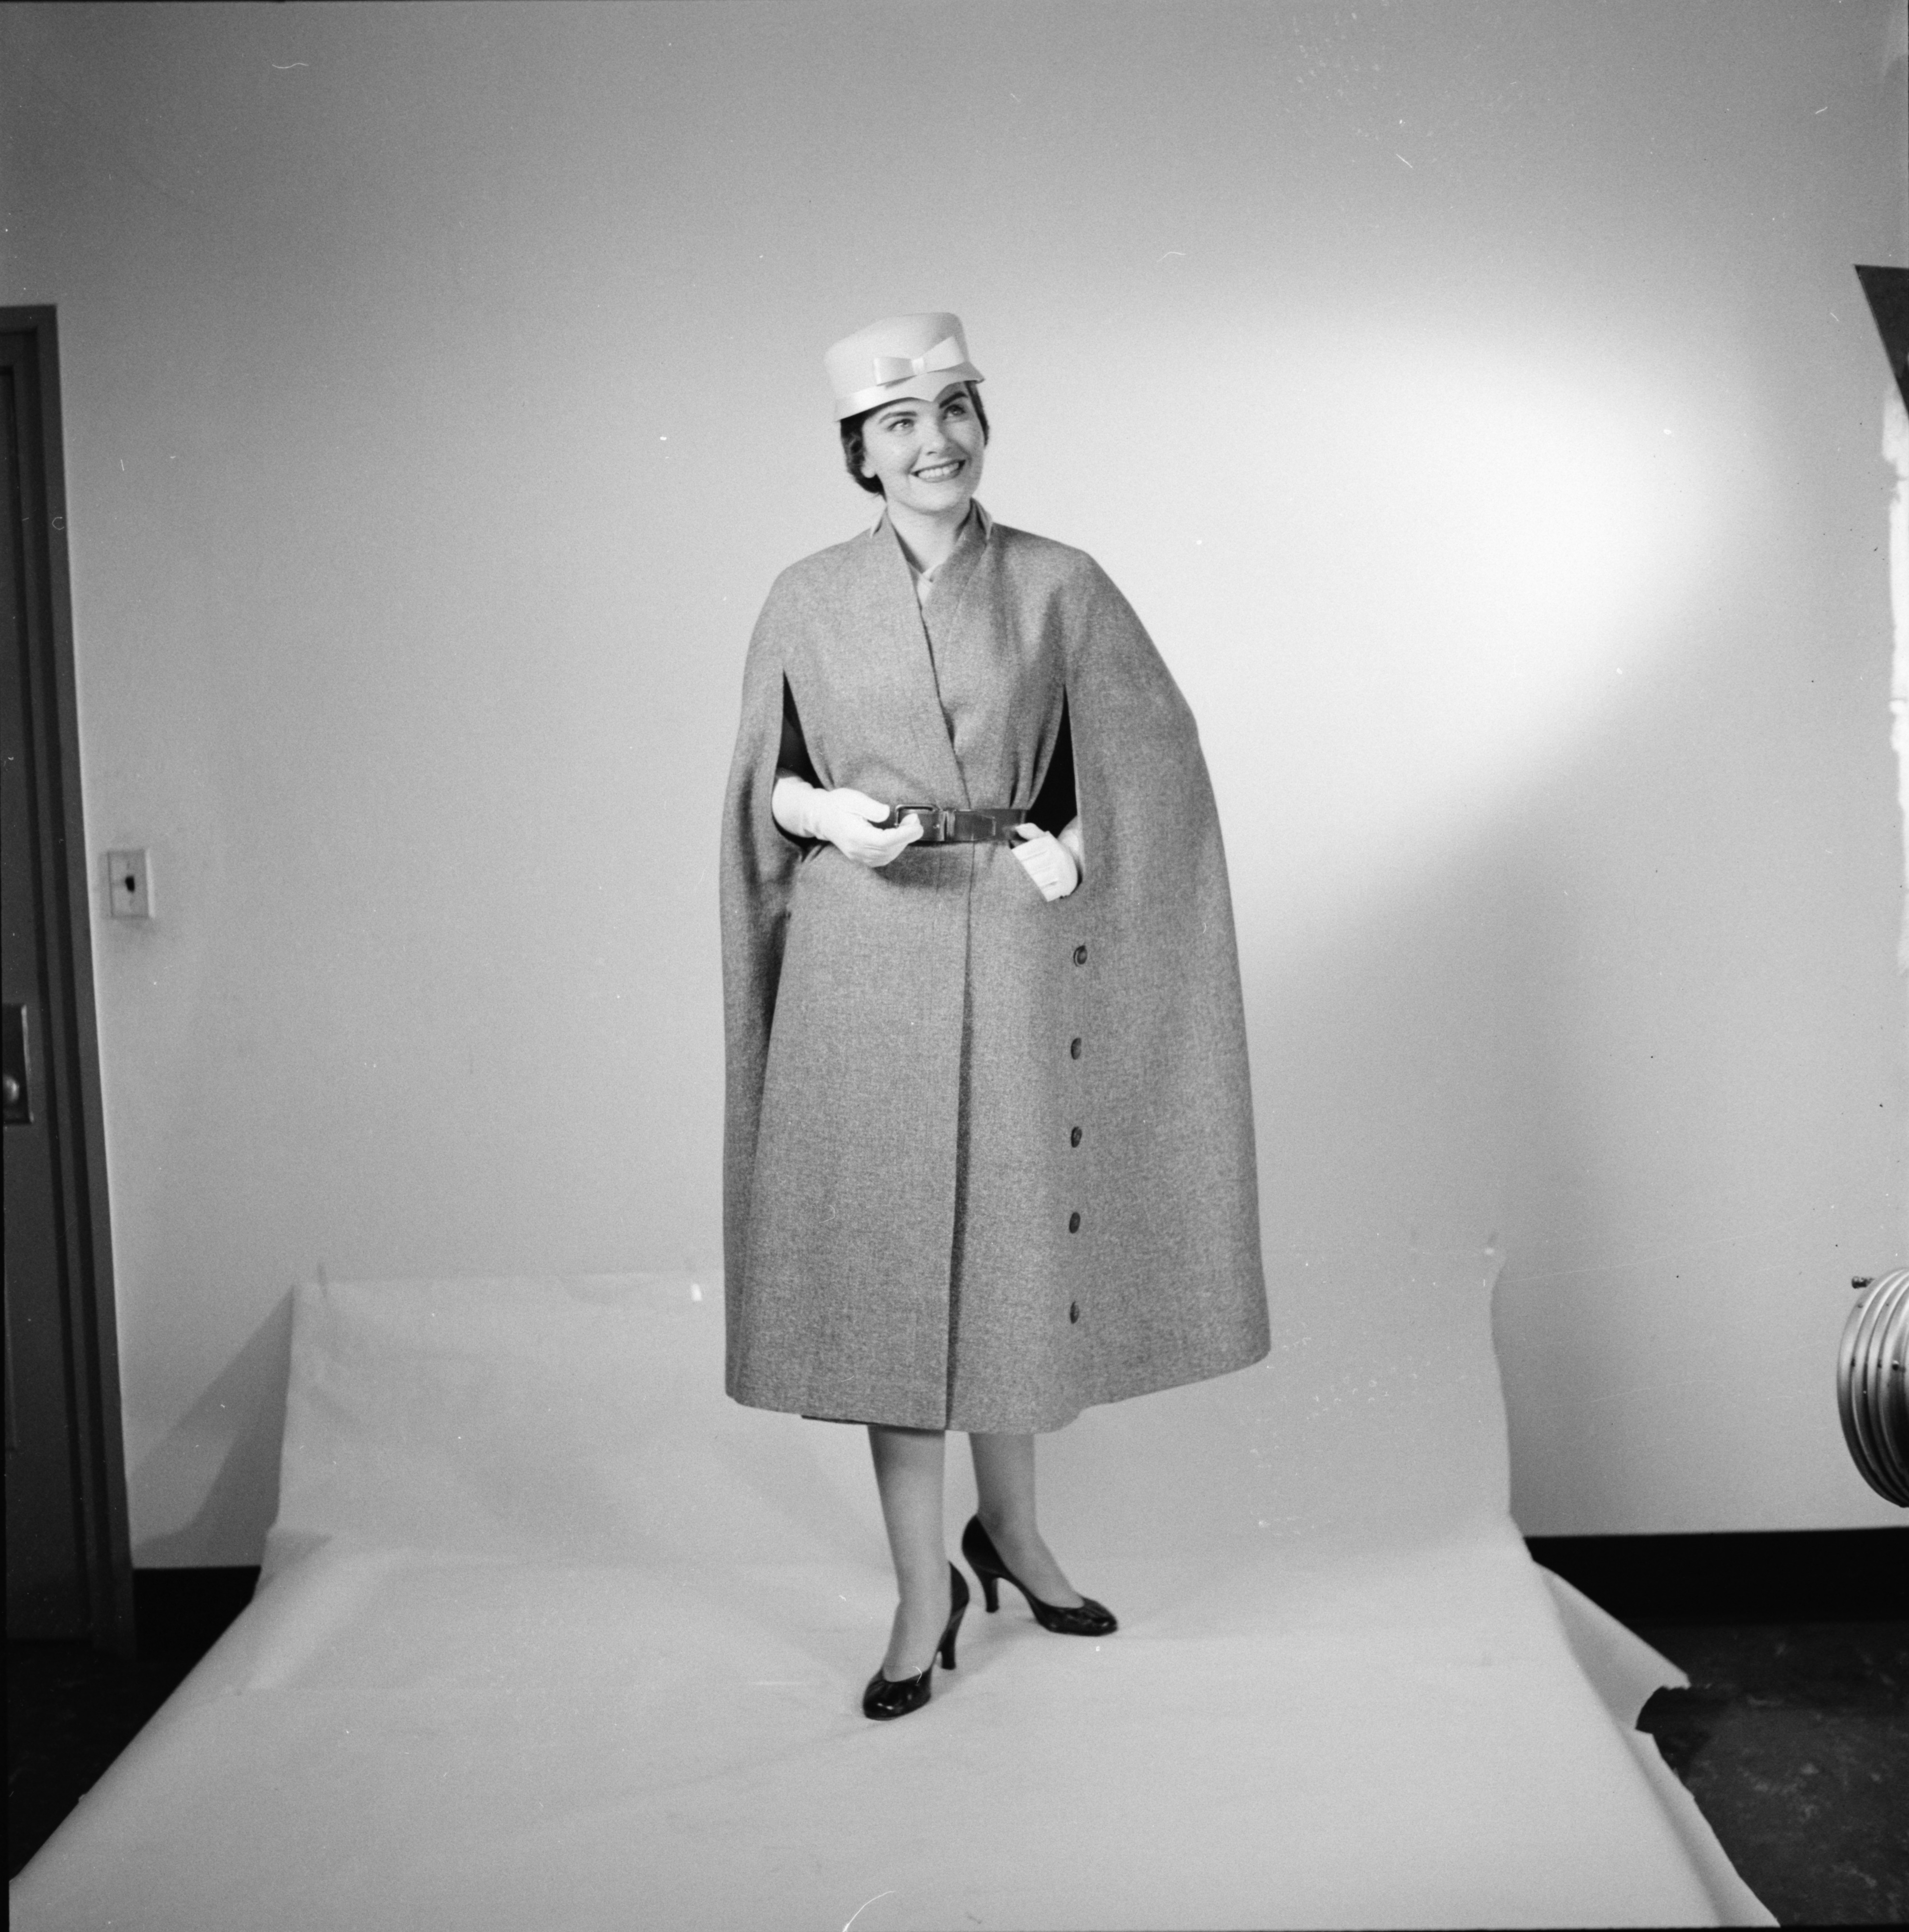 Harriet M. Rose models a cape and jacket in the Michigan Dames' Fashion Show, March 1957 image